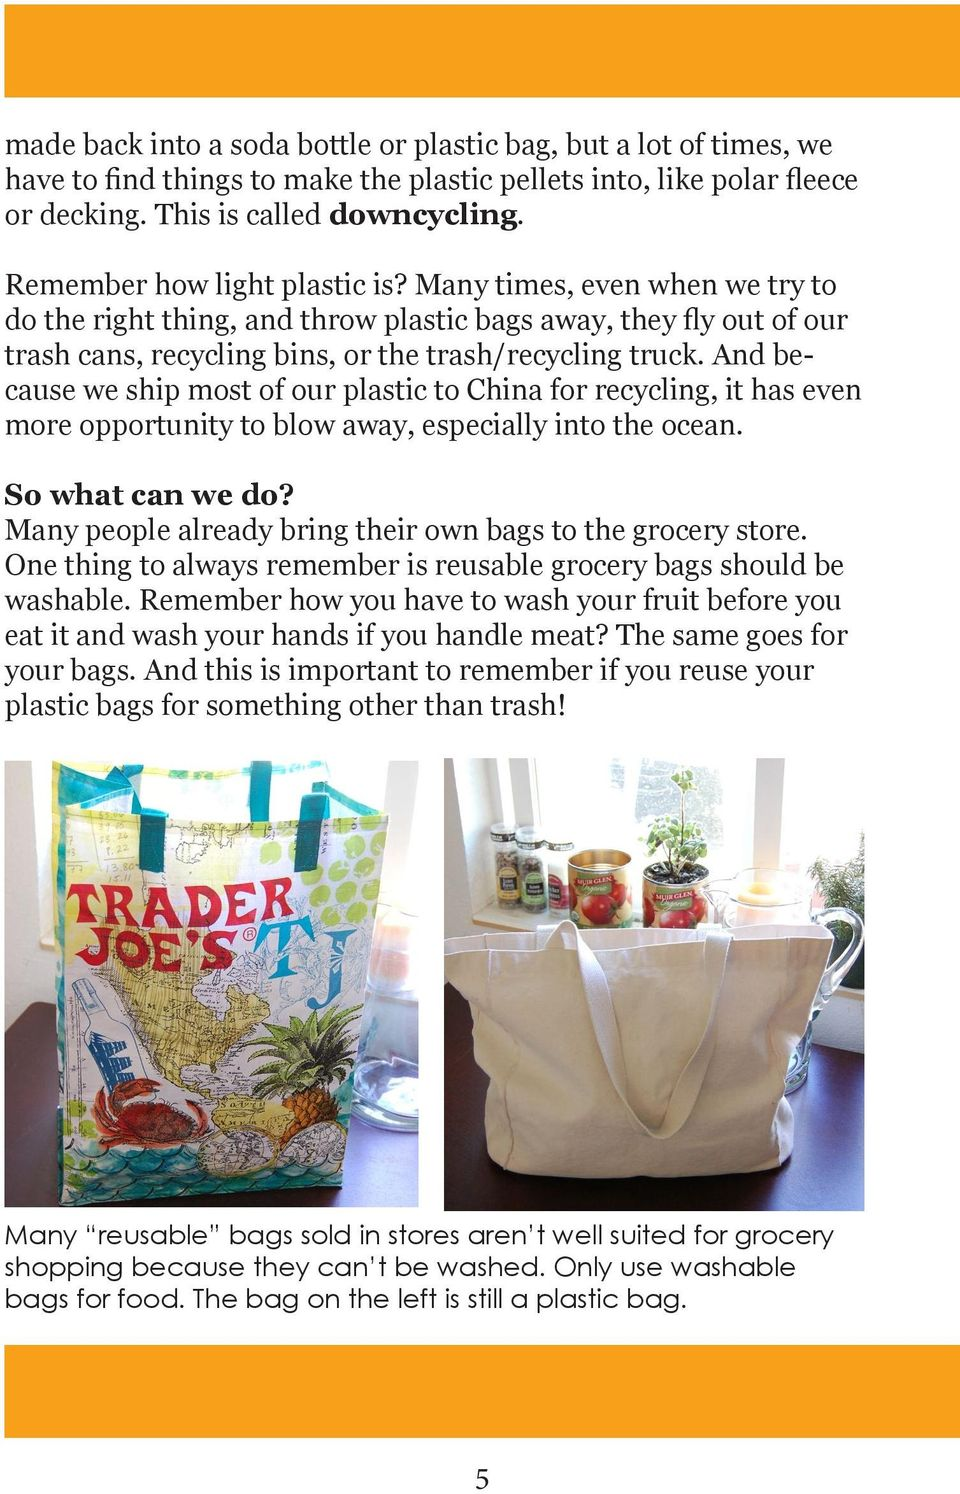 PLASTIC BAGS: What are they and do we need them? - PDF